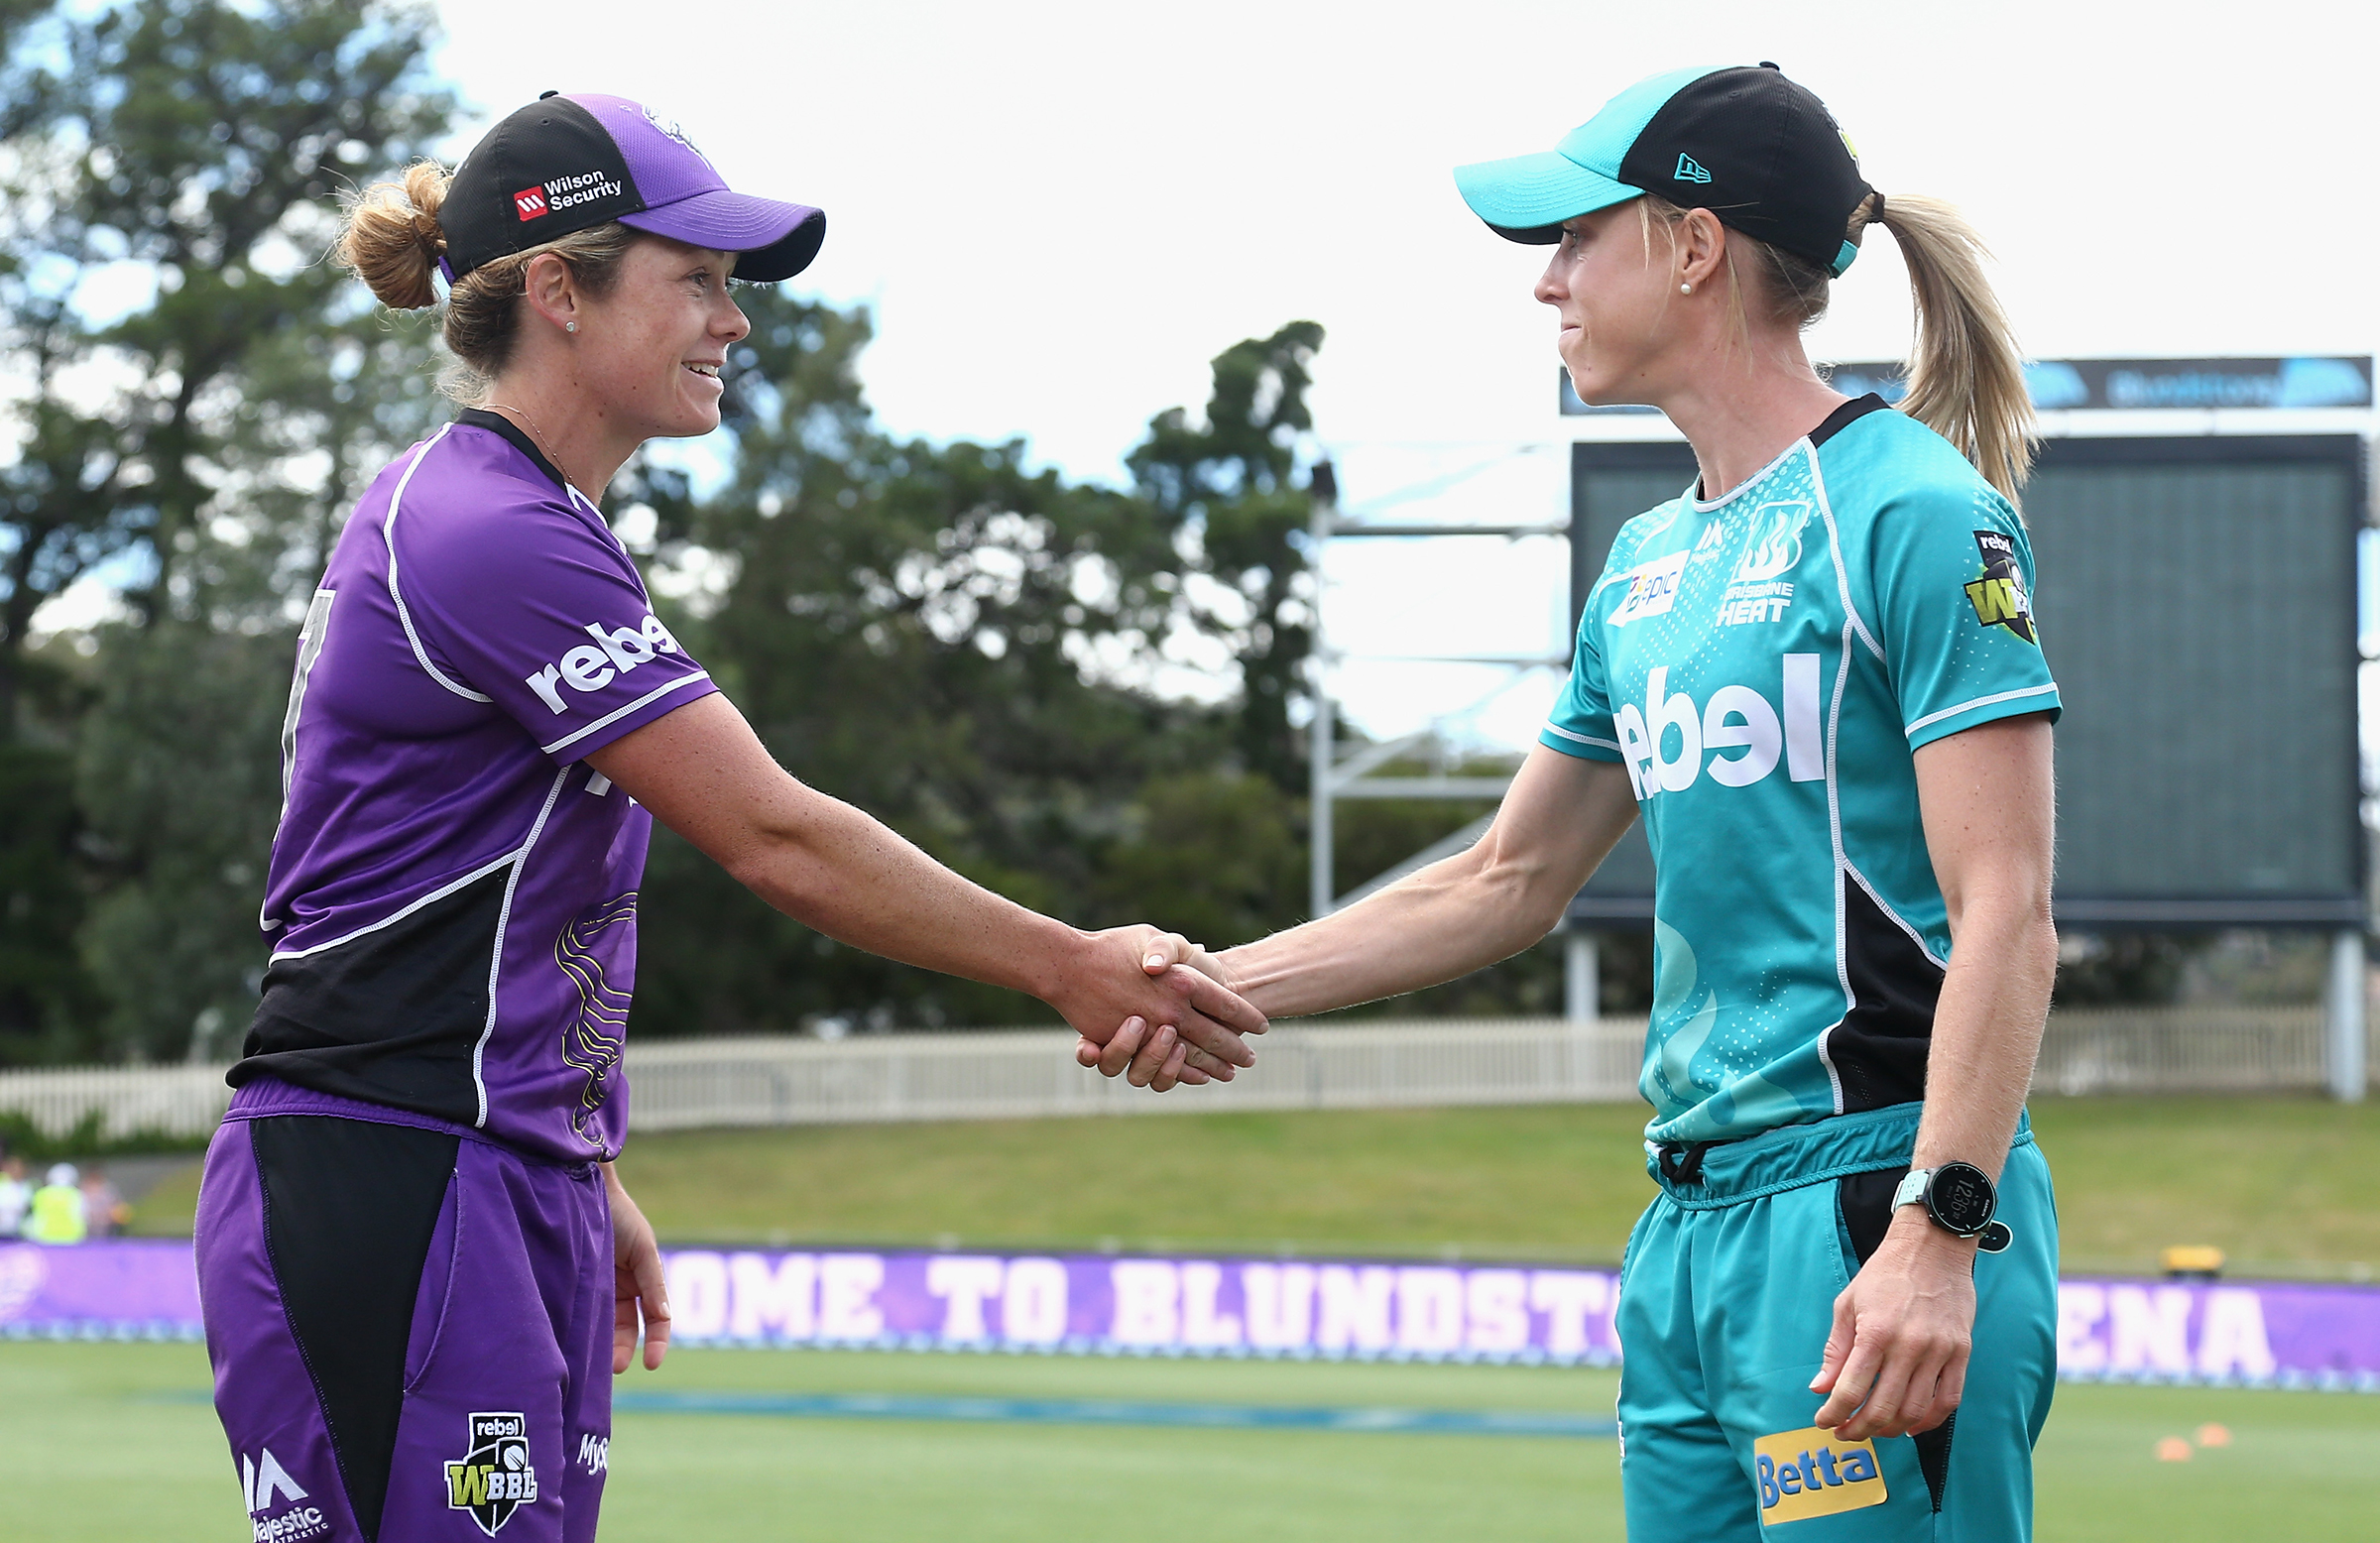 Hurricanes captain Corinne Hall (left) and Heat captain Kirby Short shake hands at a coin toss // Getty